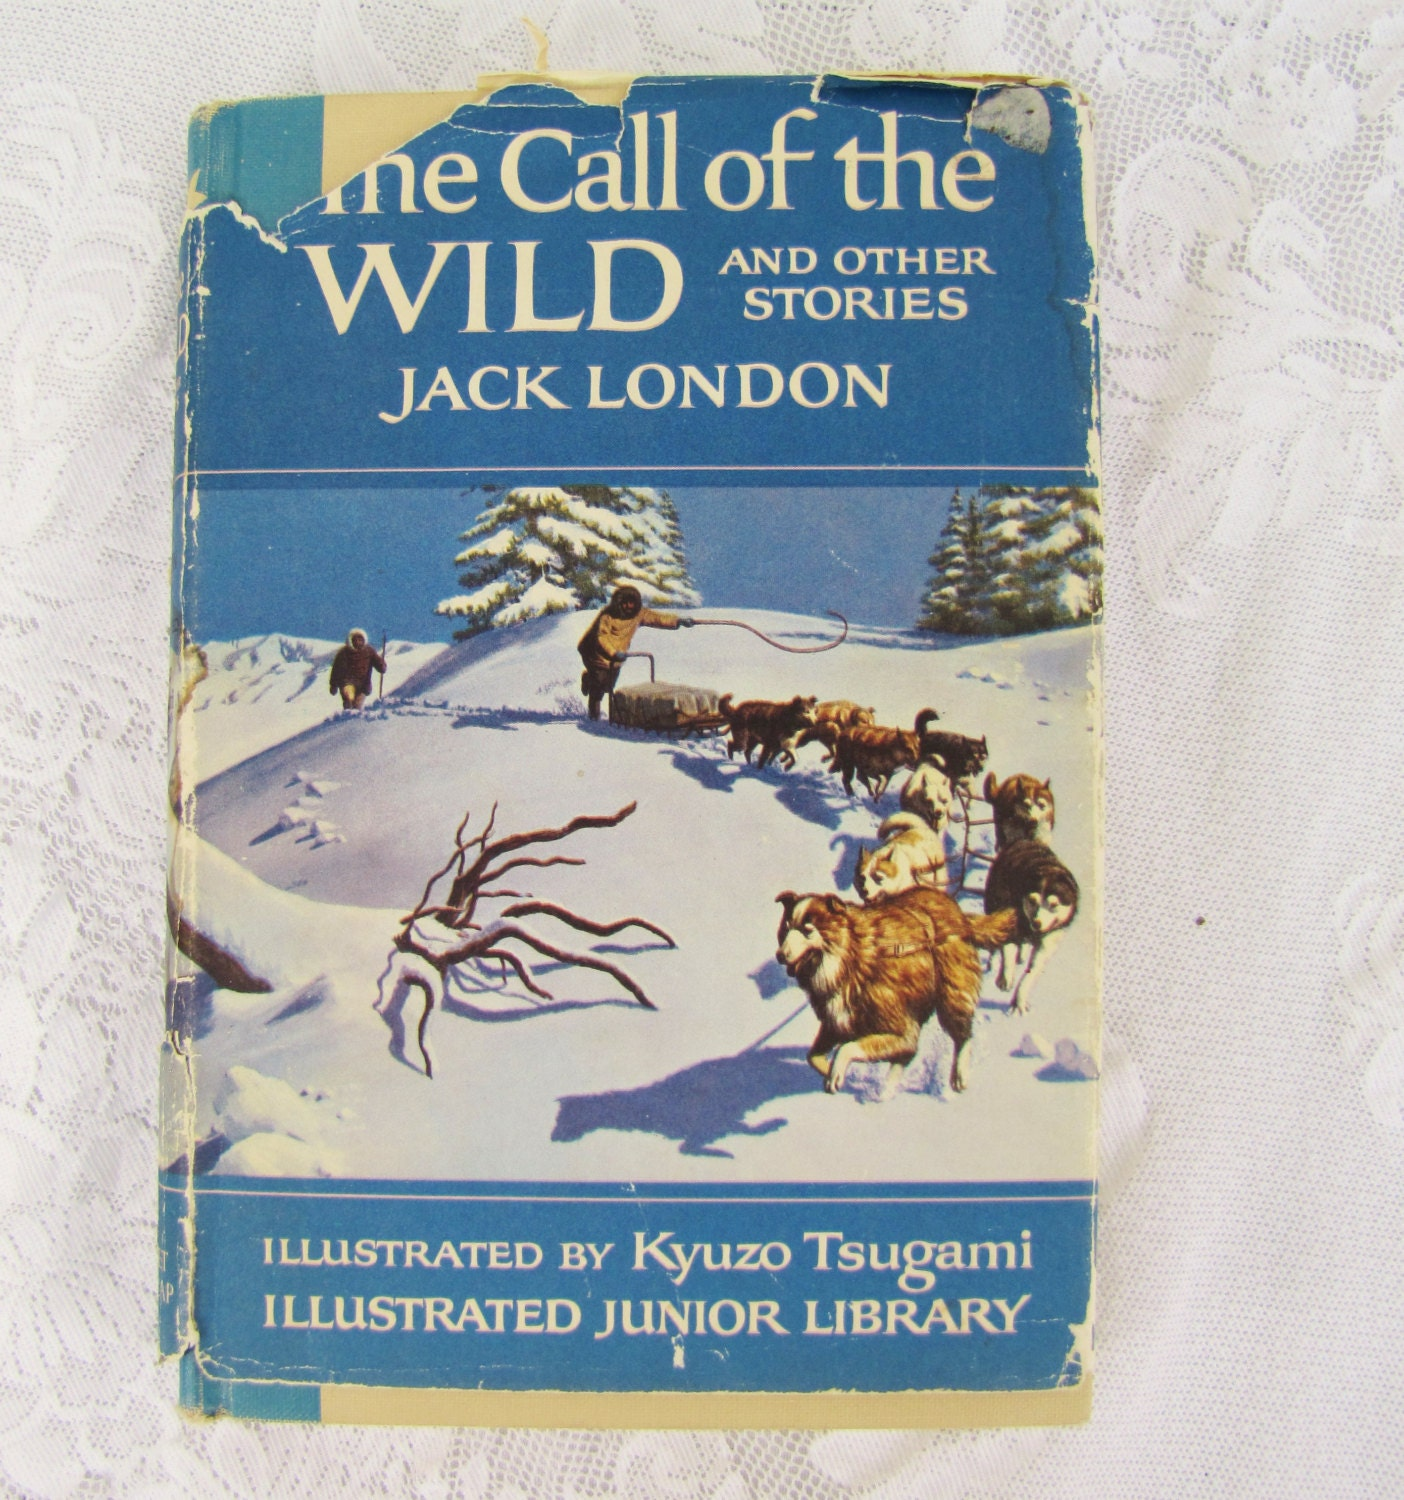 the call of the wild story One of literature's most popular and exciting adventure stories, the call of the wild will enrich the reading experience of youngsters.